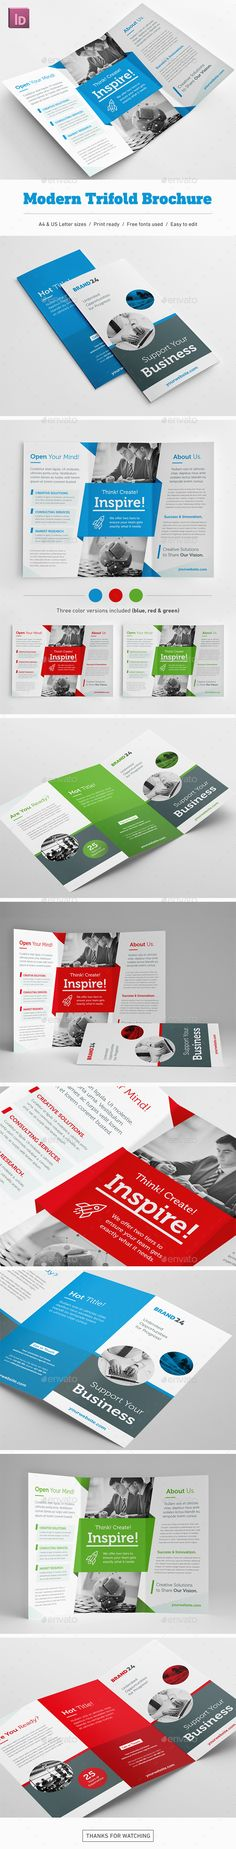 Modern Trifold Brochure Template InDesign INDD